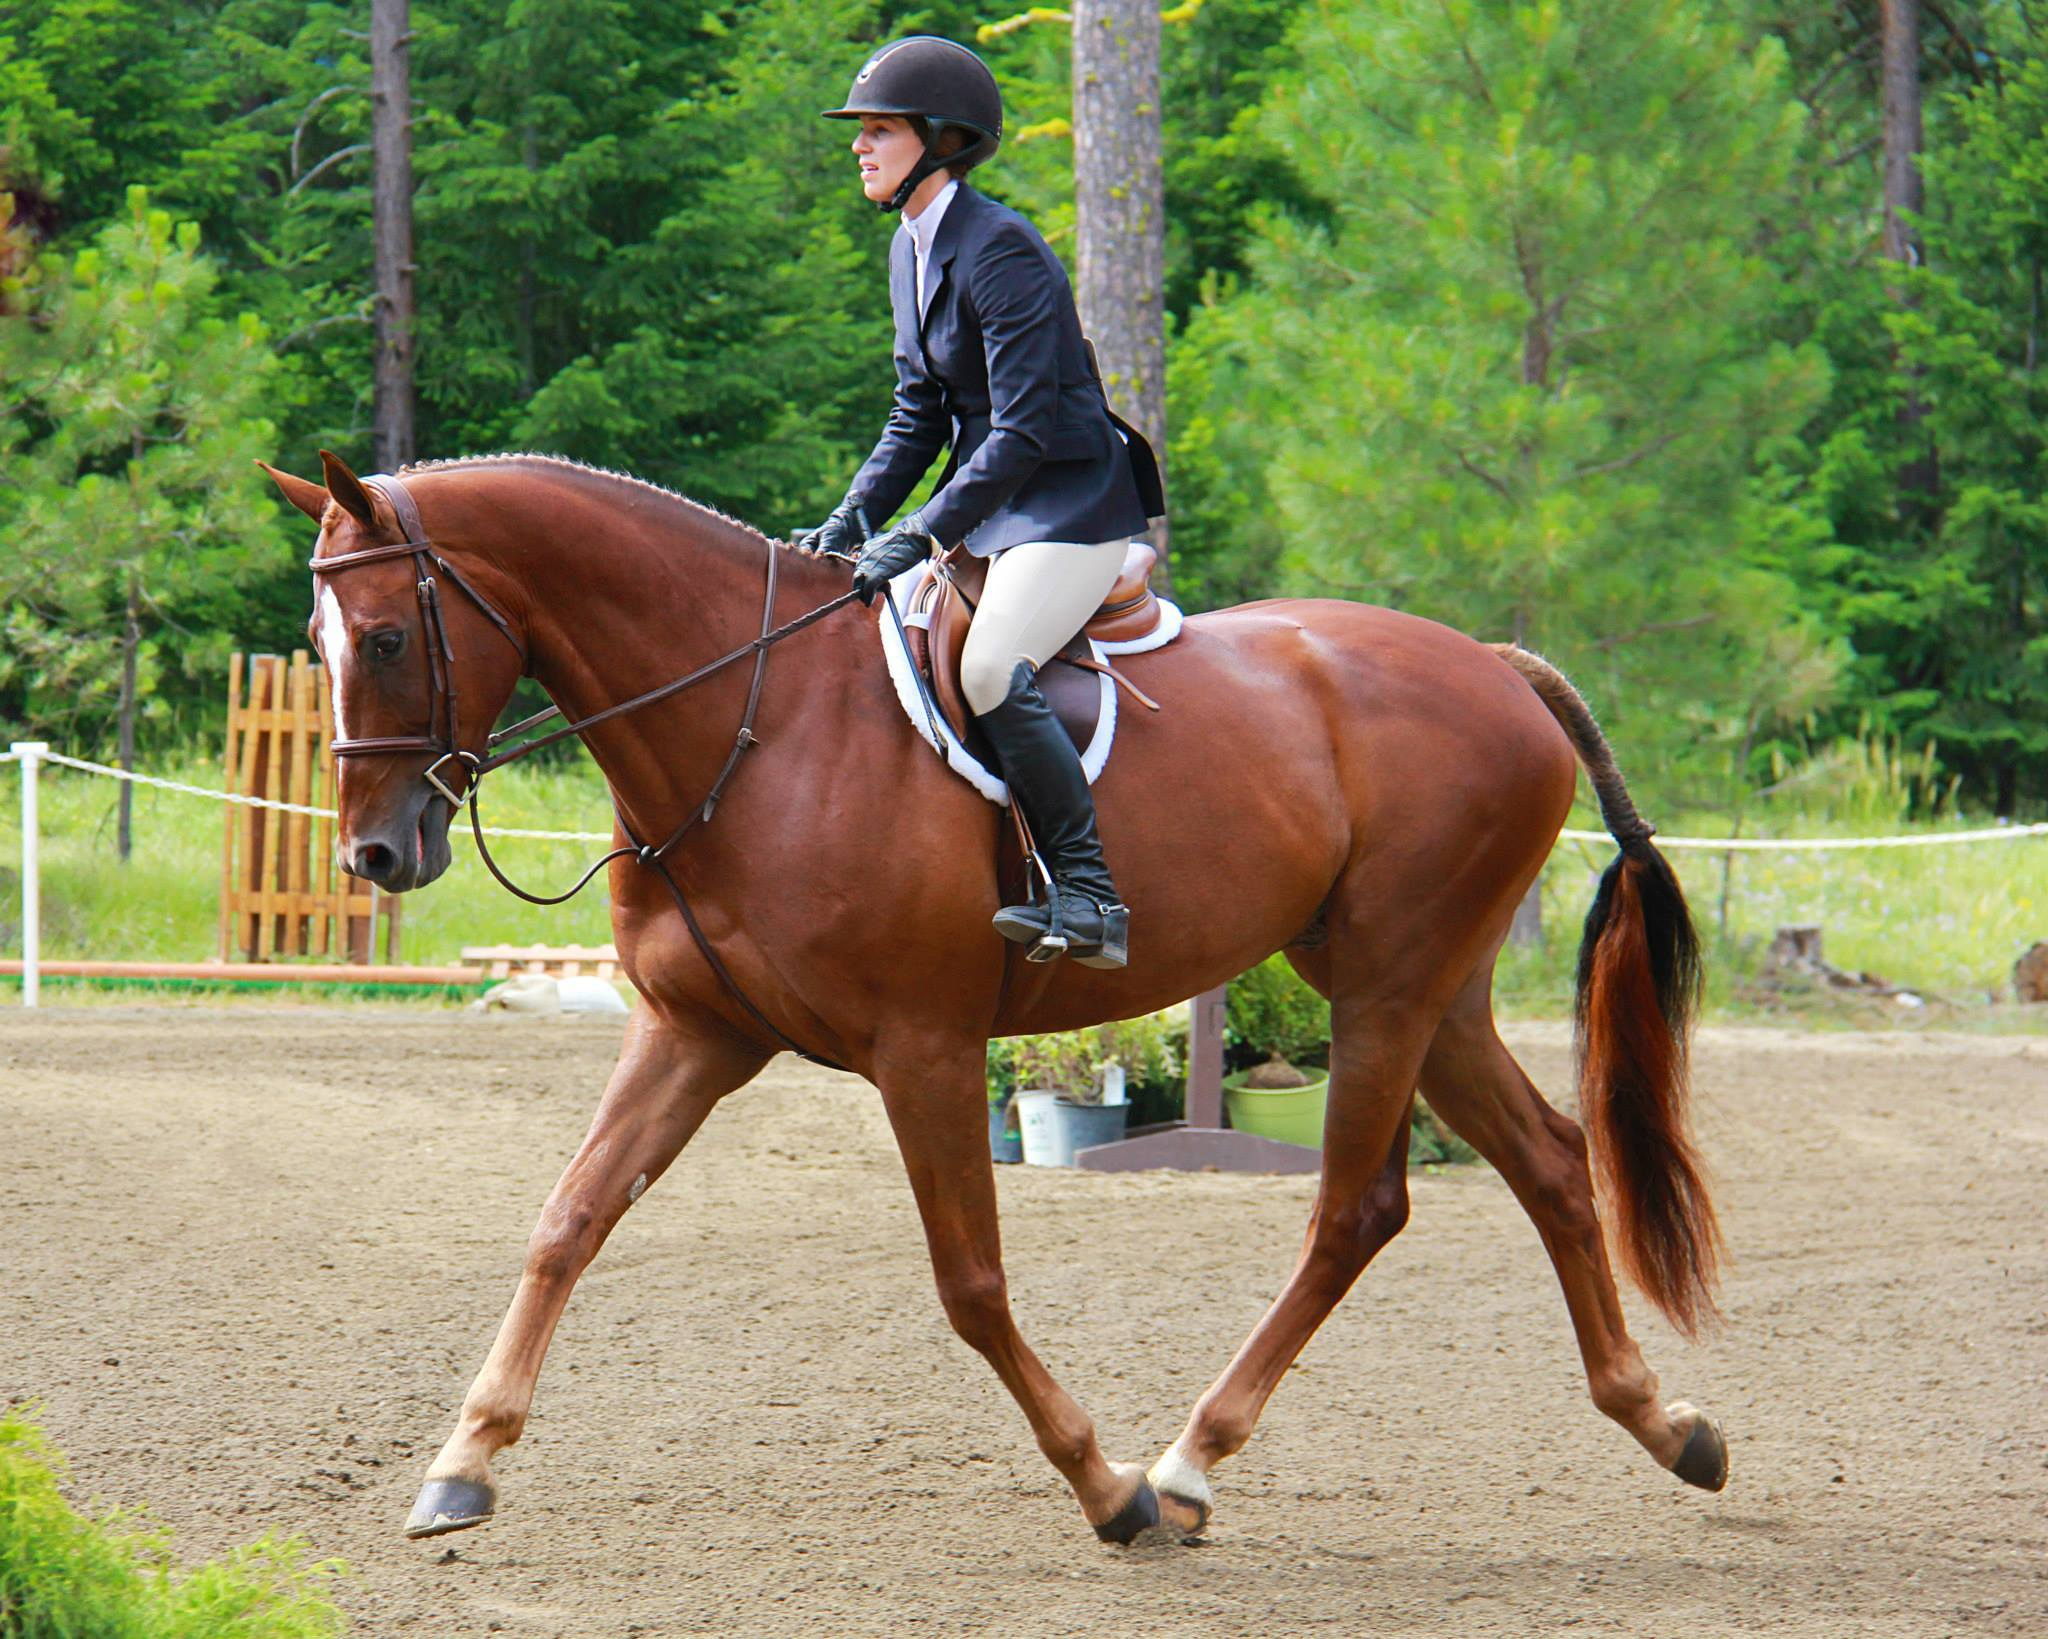 - Our high end-sales program specializes in finding every horse an appropriate and prosperous new home.